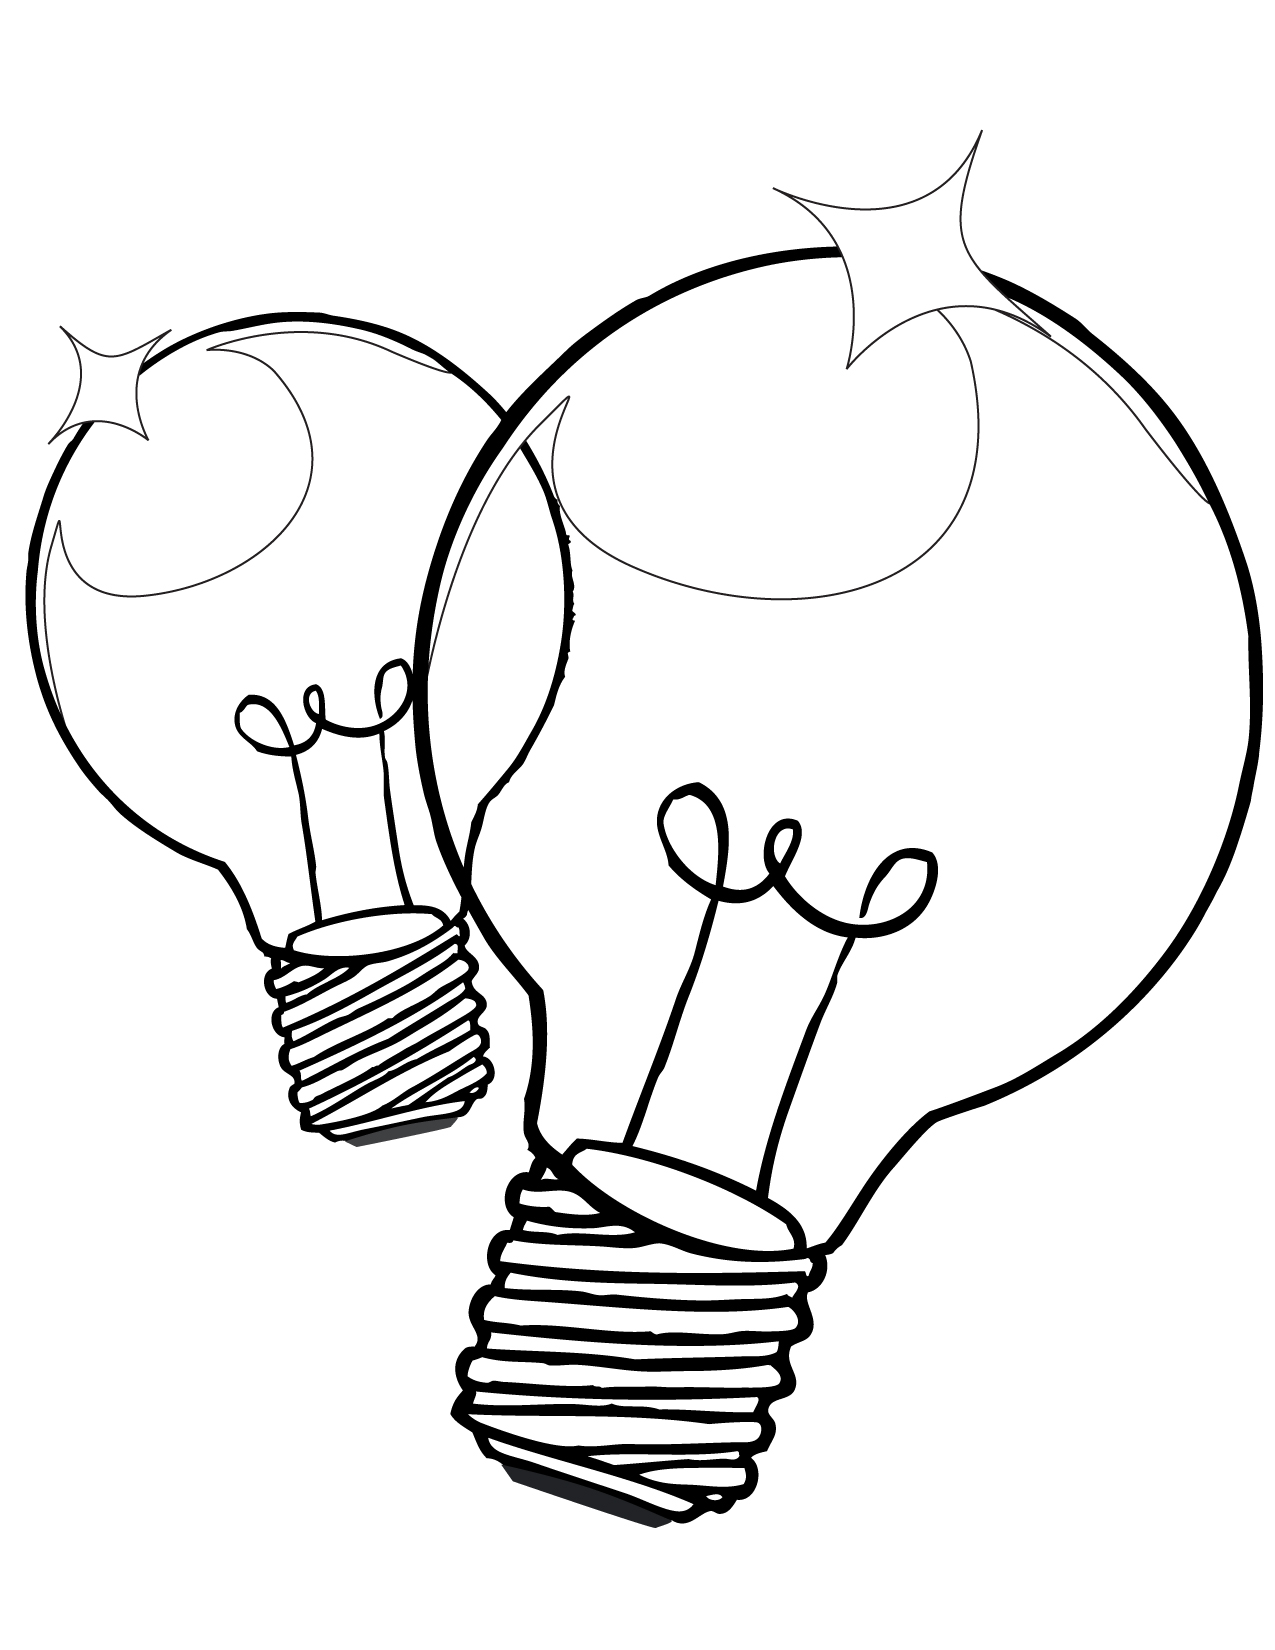 Lightbulb Coloring Page - Handipoints